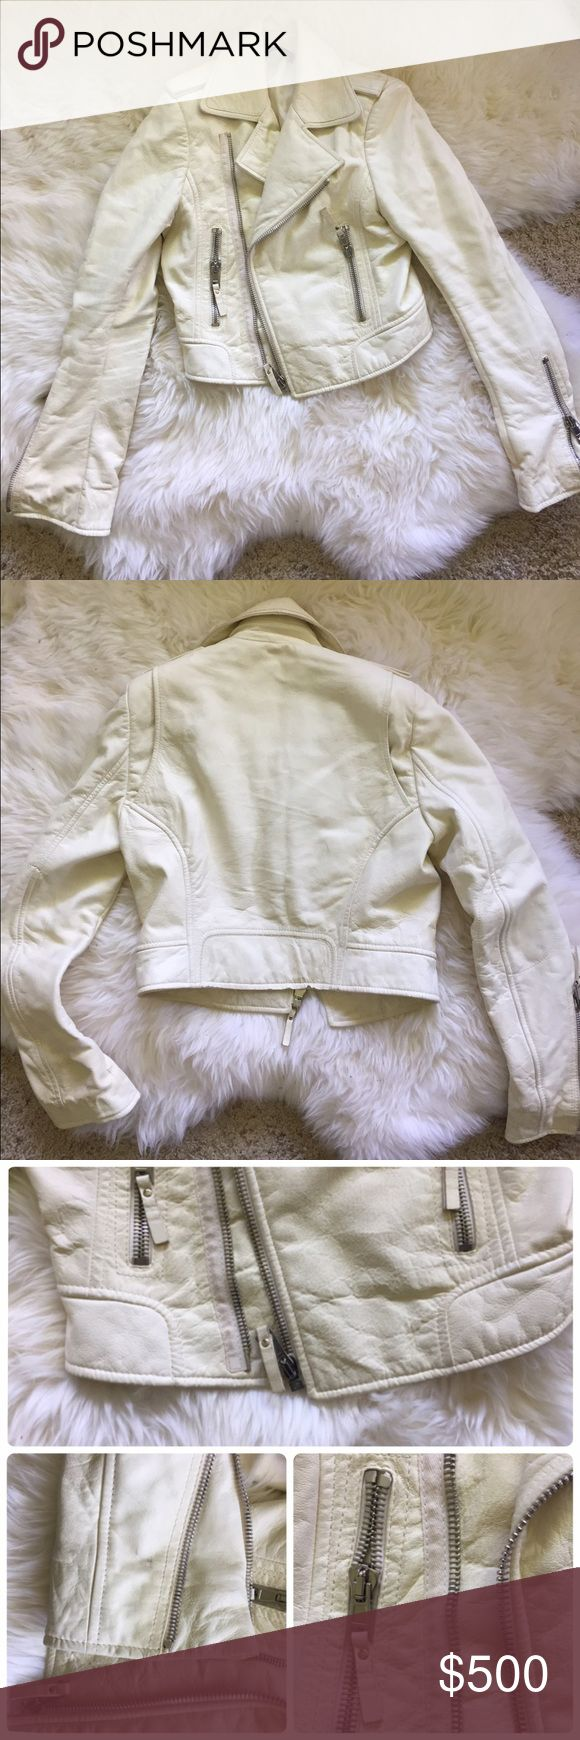 Authentic Balenciaga leather jacket white S-M Authentic Balenciaga leather jacket! Super cool and classy! If you are looking for a leather jacket, this is the one! This is one of the most wanted Balenciaga leather jackets! The leather is so soft and nicely done! Thick jacket. Great piece for most of the year! The jacket is good condition overall. Some marks on the jacket and kinda dirty. Professional cleaning needed if  you mind. Or just put it in as it is. :) Balenciaga Jackets & Coats